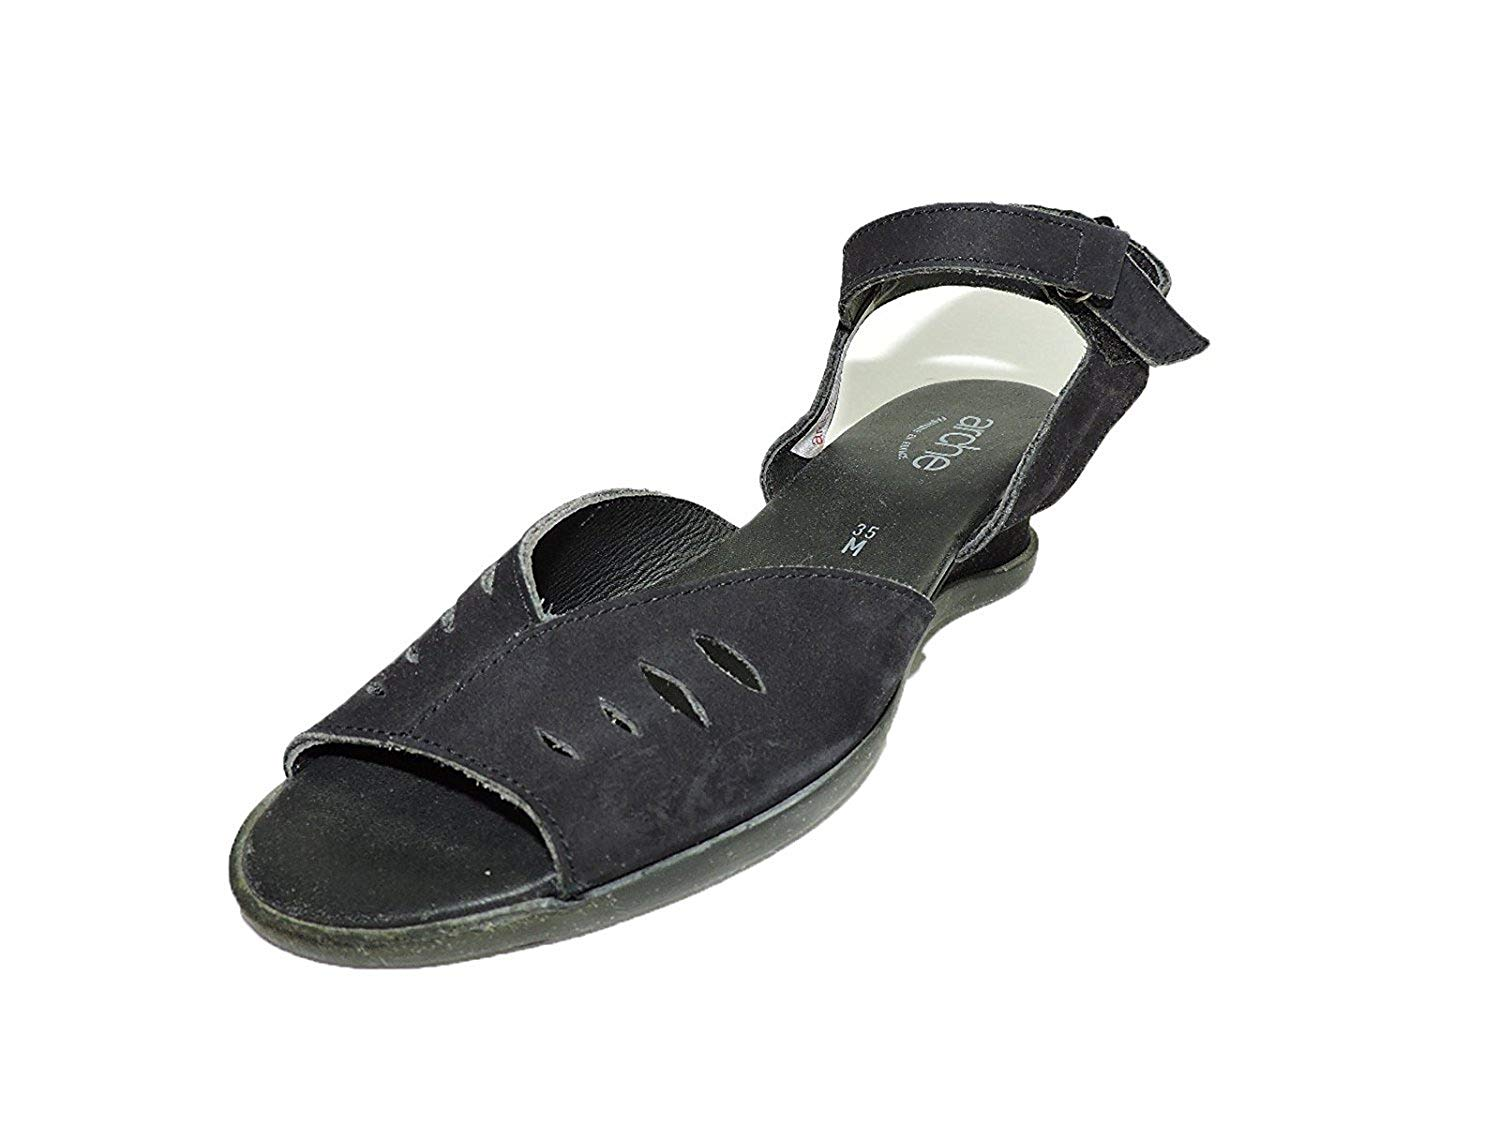 """Arche Istria Black Leather Wedge Sandals Open Toe Low 2"""" Heel Size 5 m"""